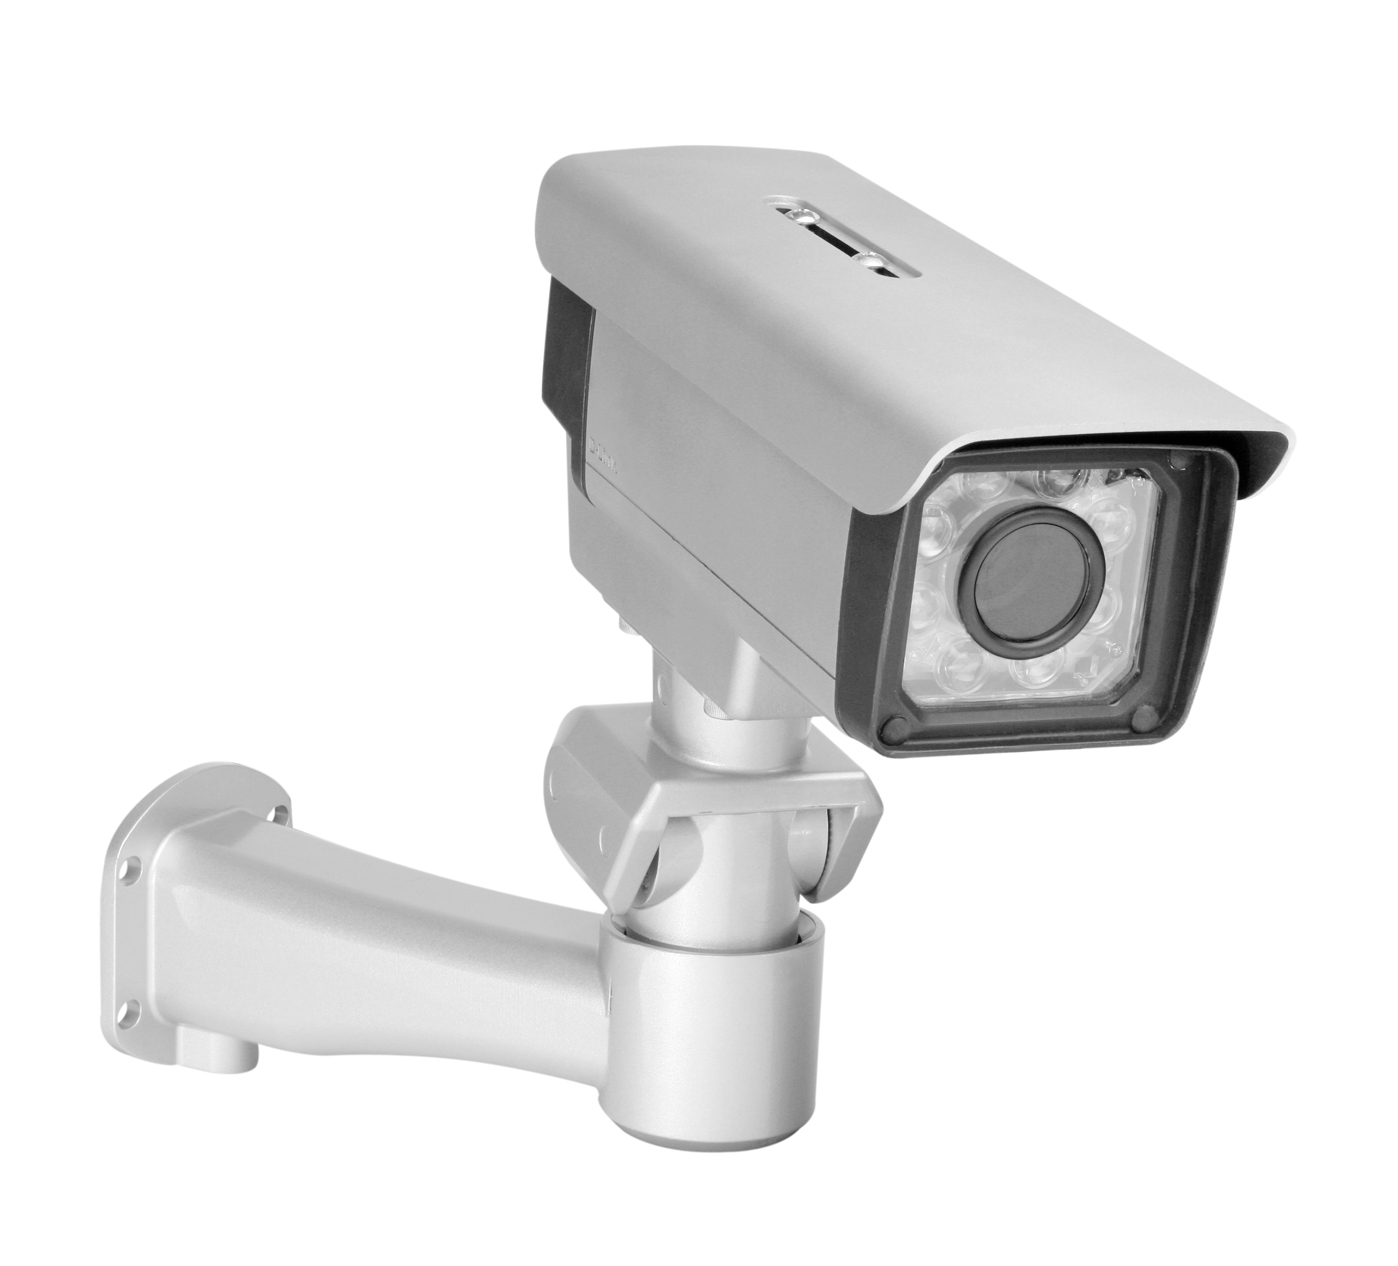 DAY & NIGHT PoE OUTDOOR NETWORK CAMERAS